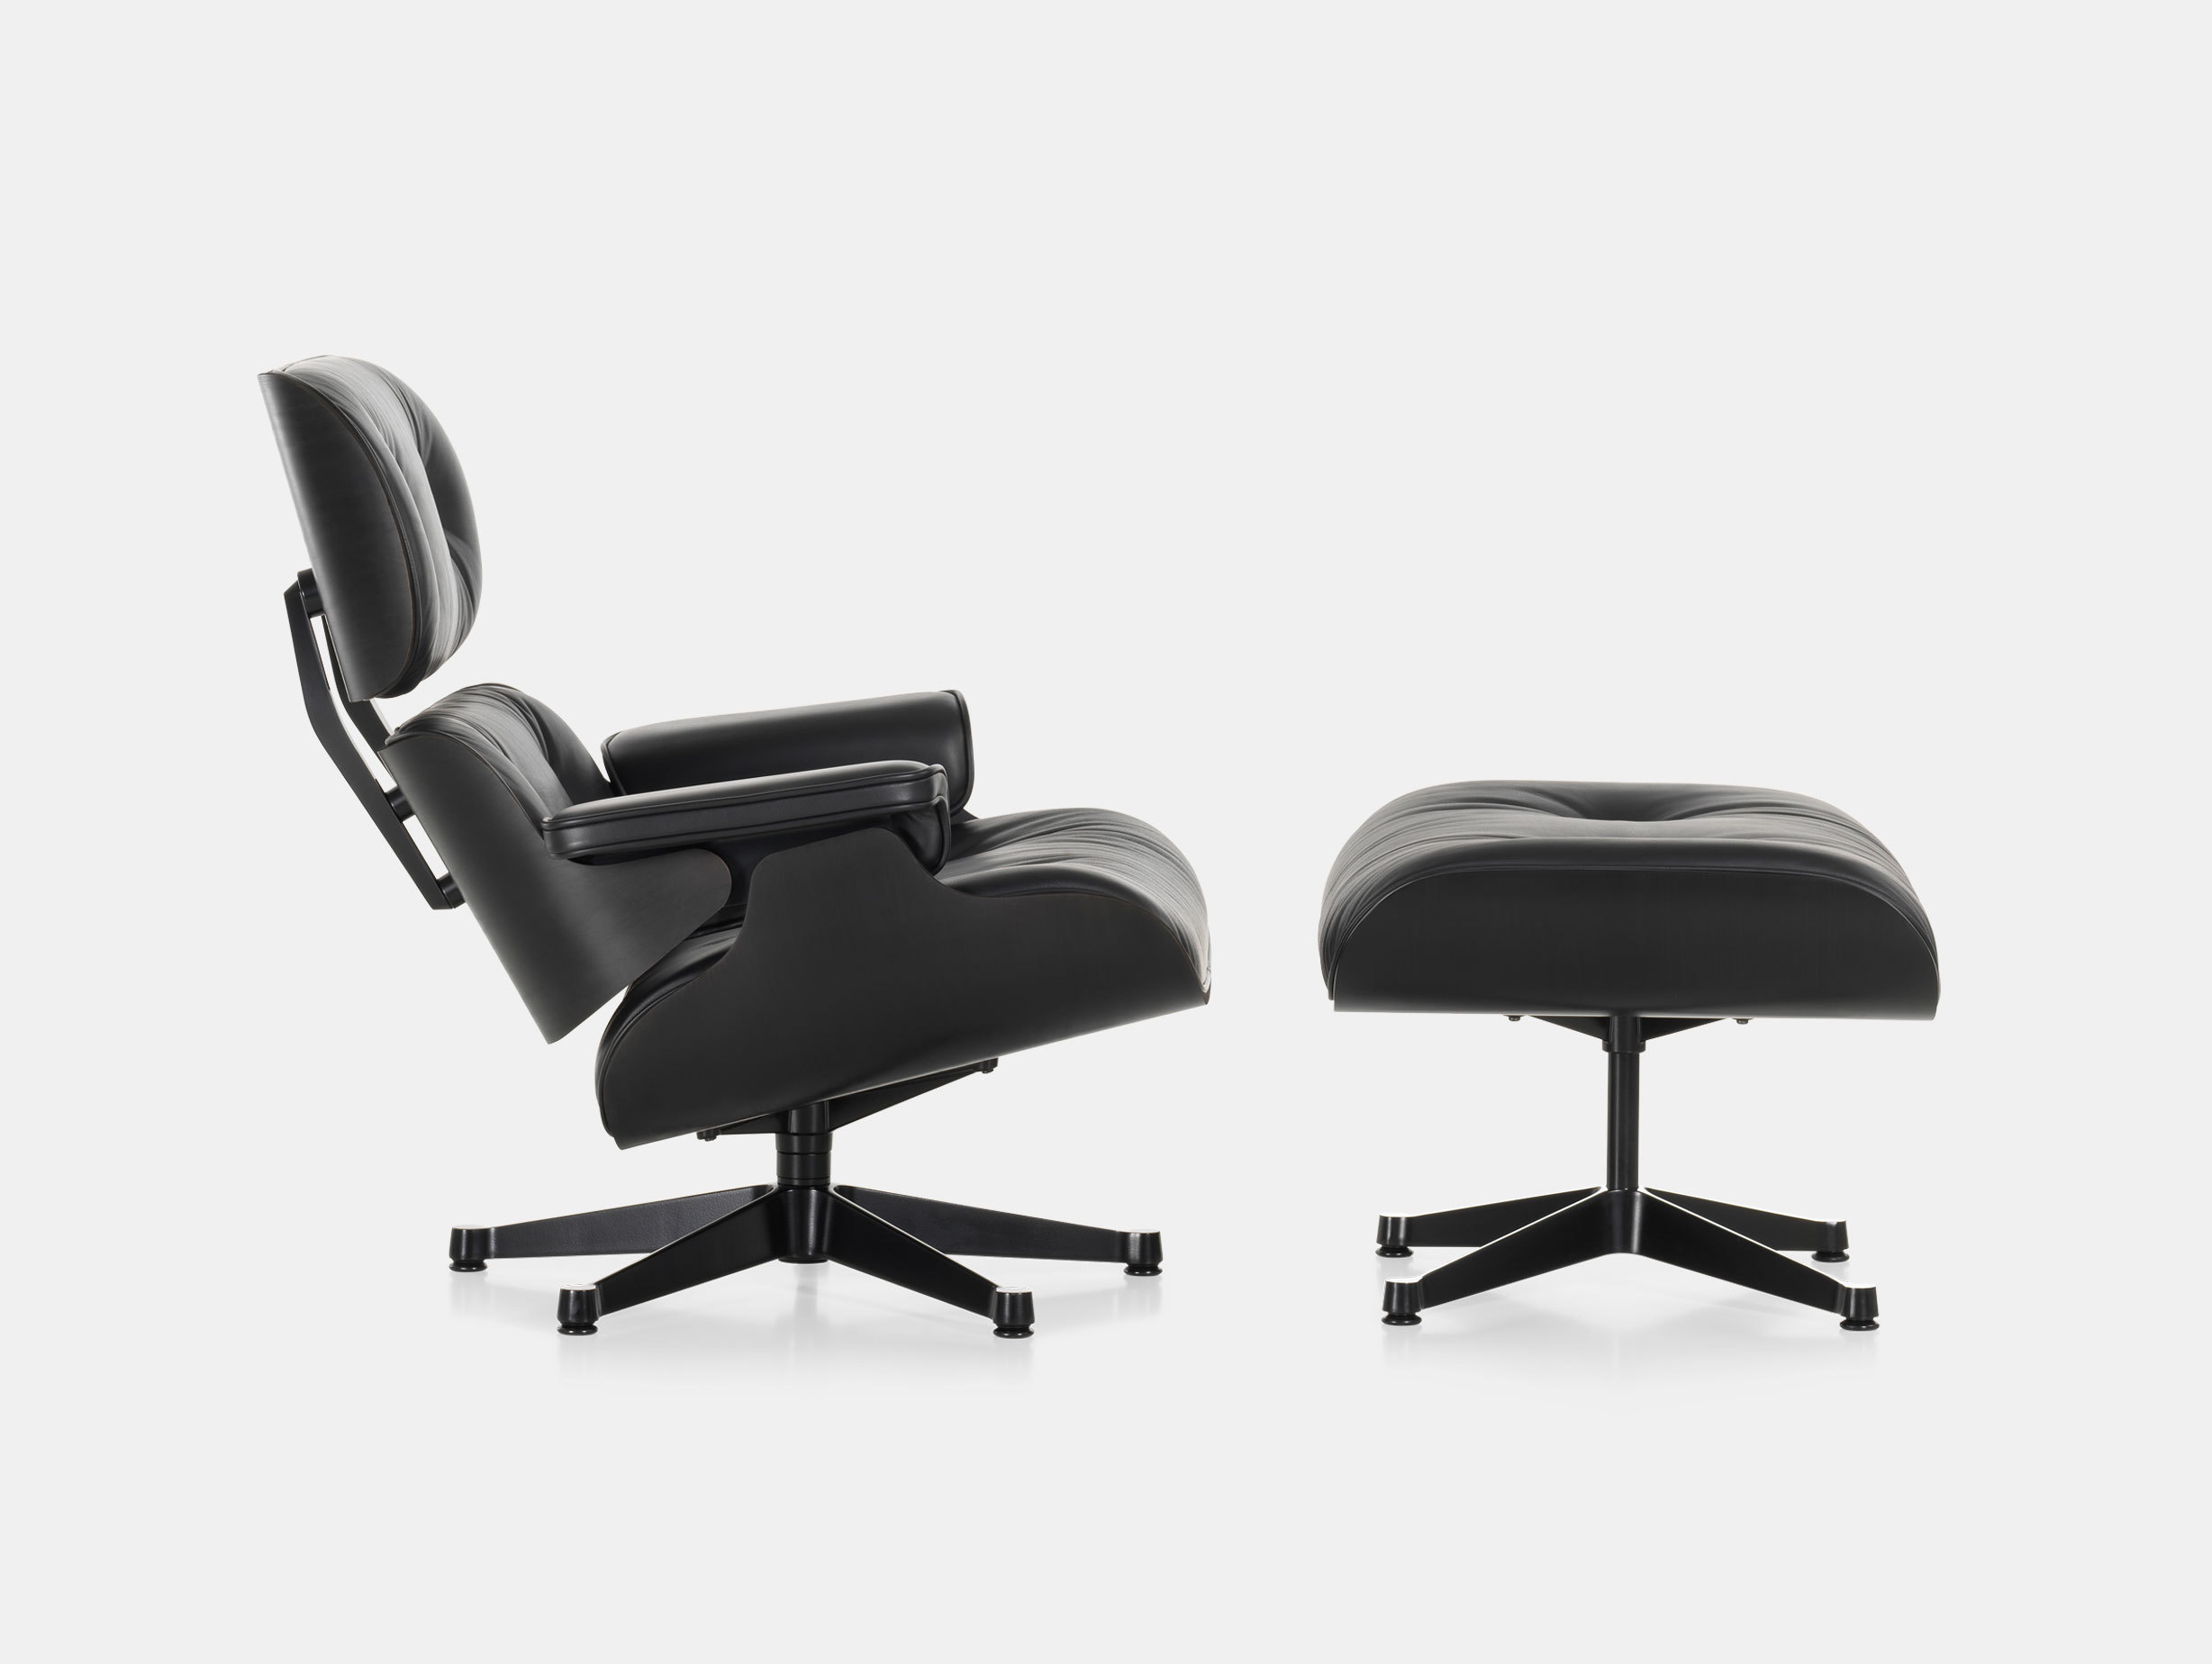 Eames Lounge Chair & Ottoman image 2